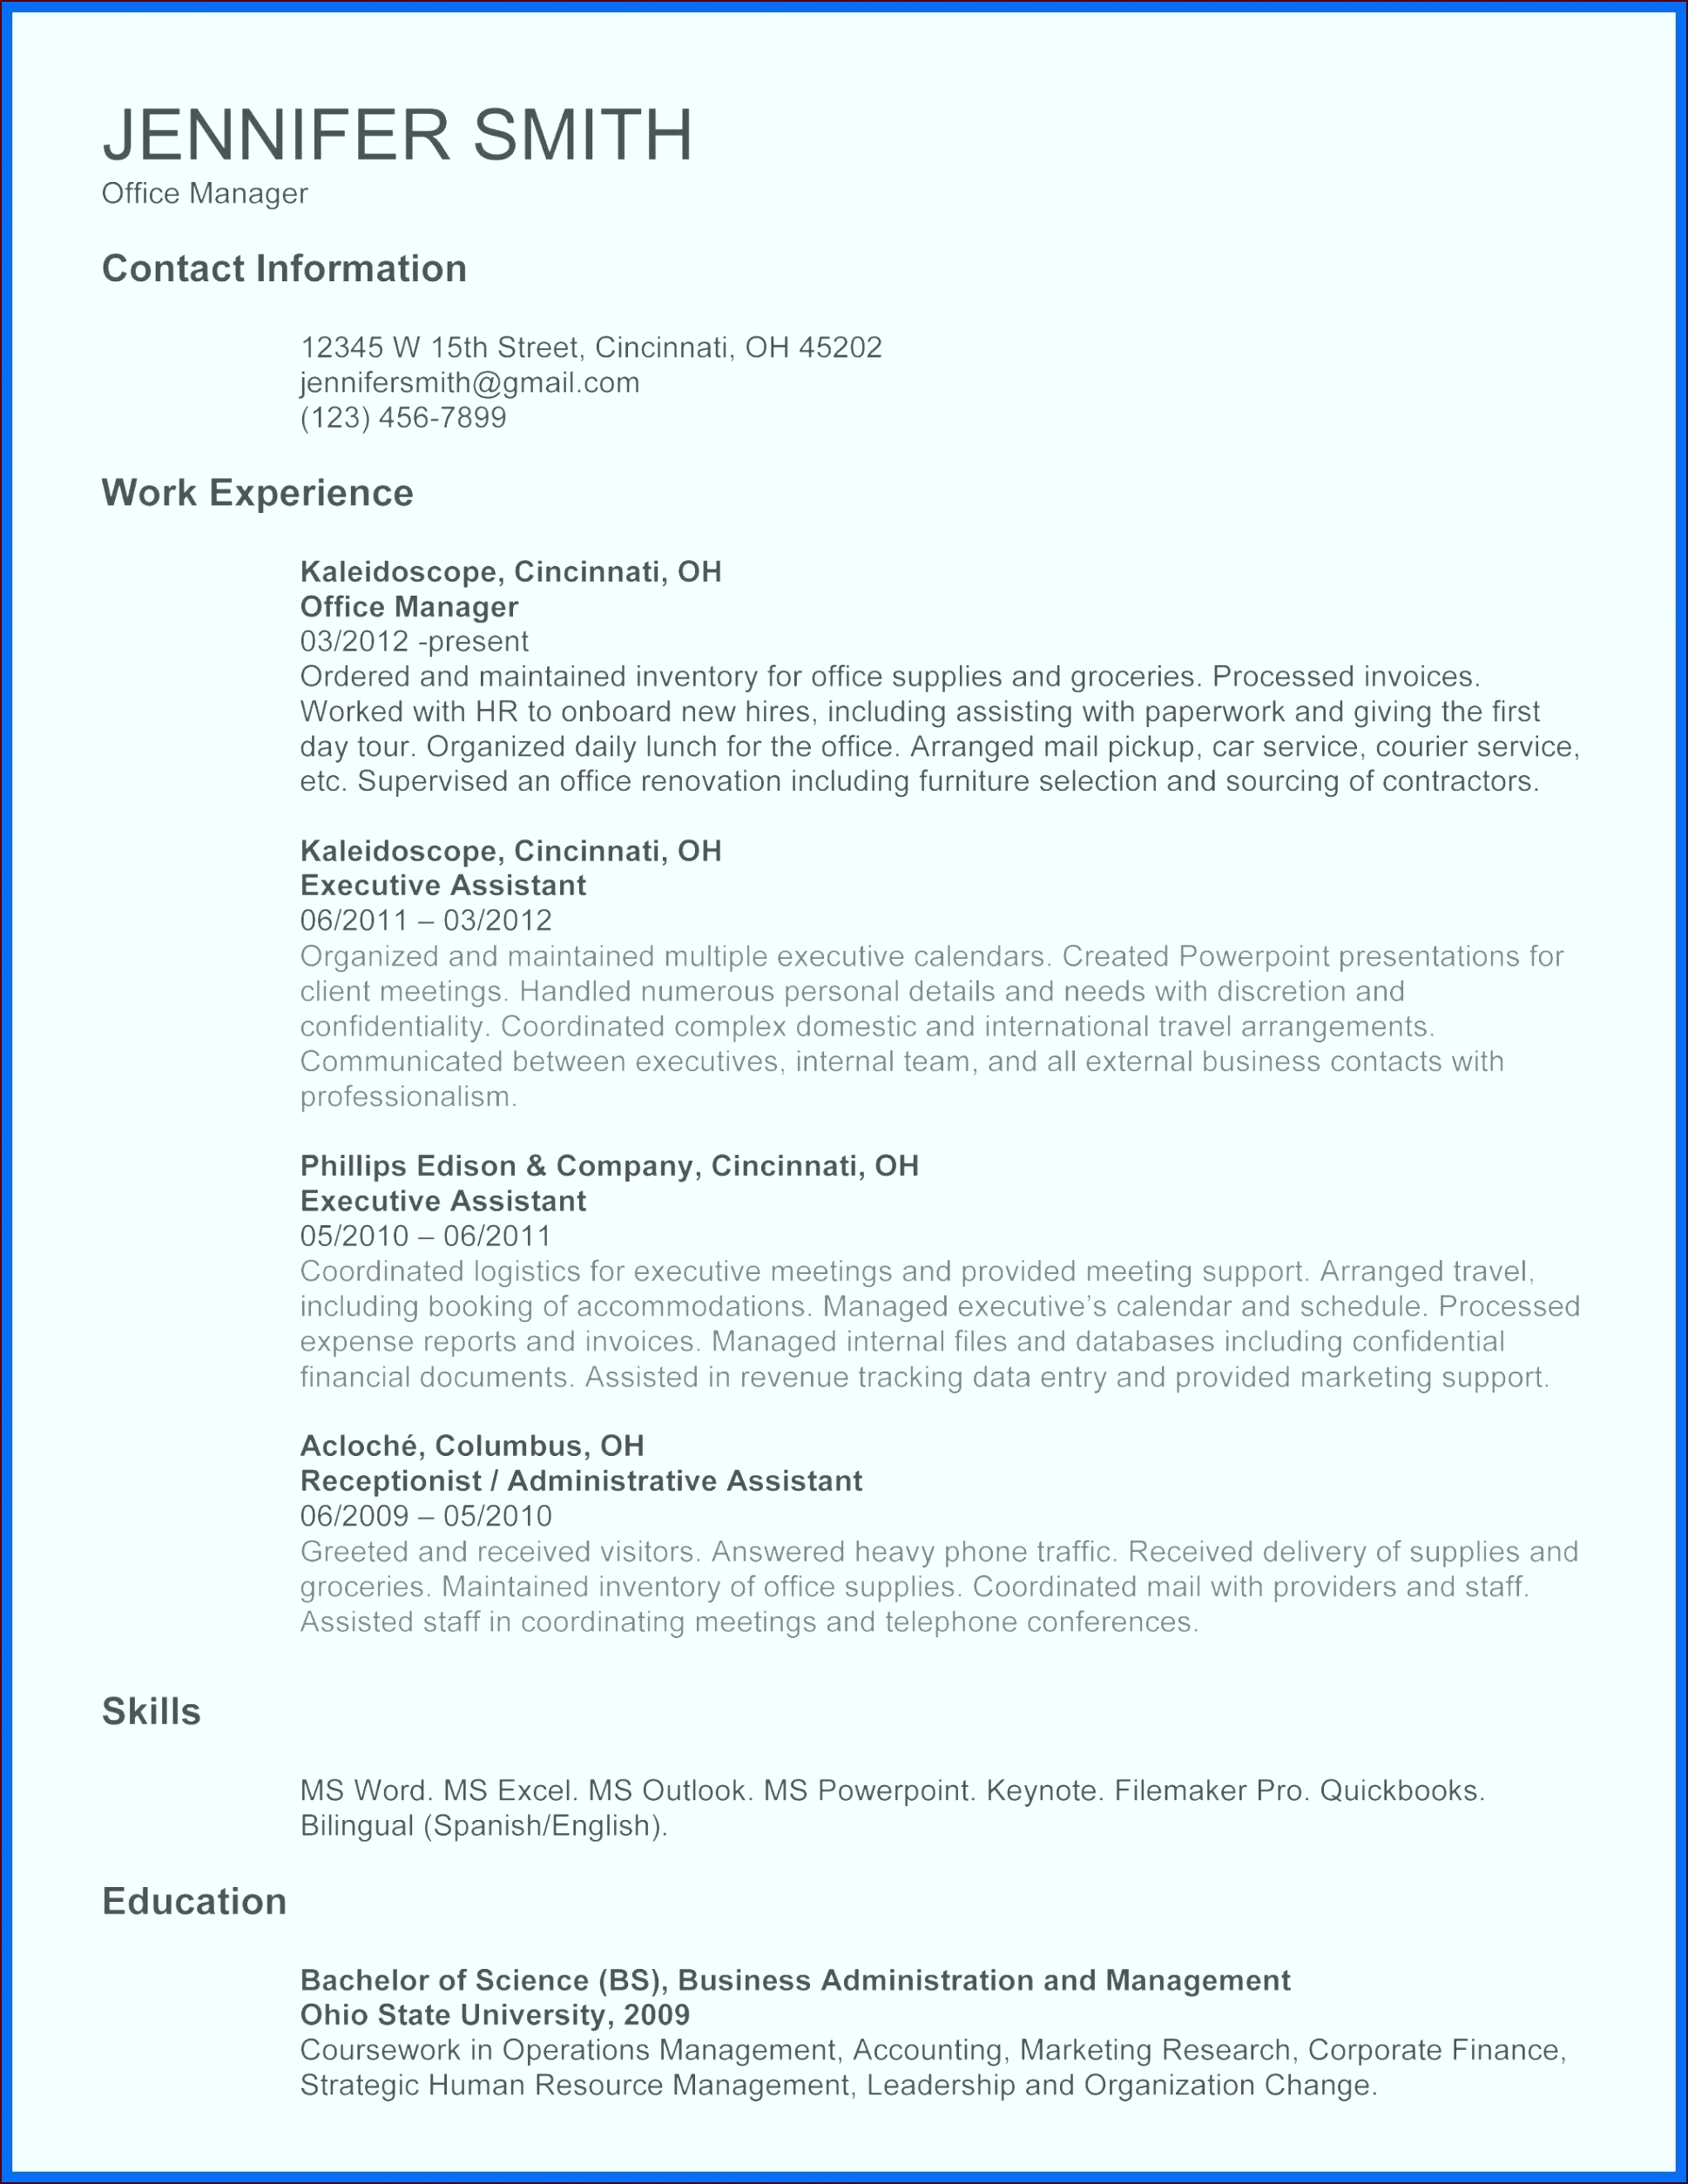 travel spreadsheet excel templates or cv layout template word new cv templates 0d wallpapers 52 new cv of travel spreadsheet excel templates poapi